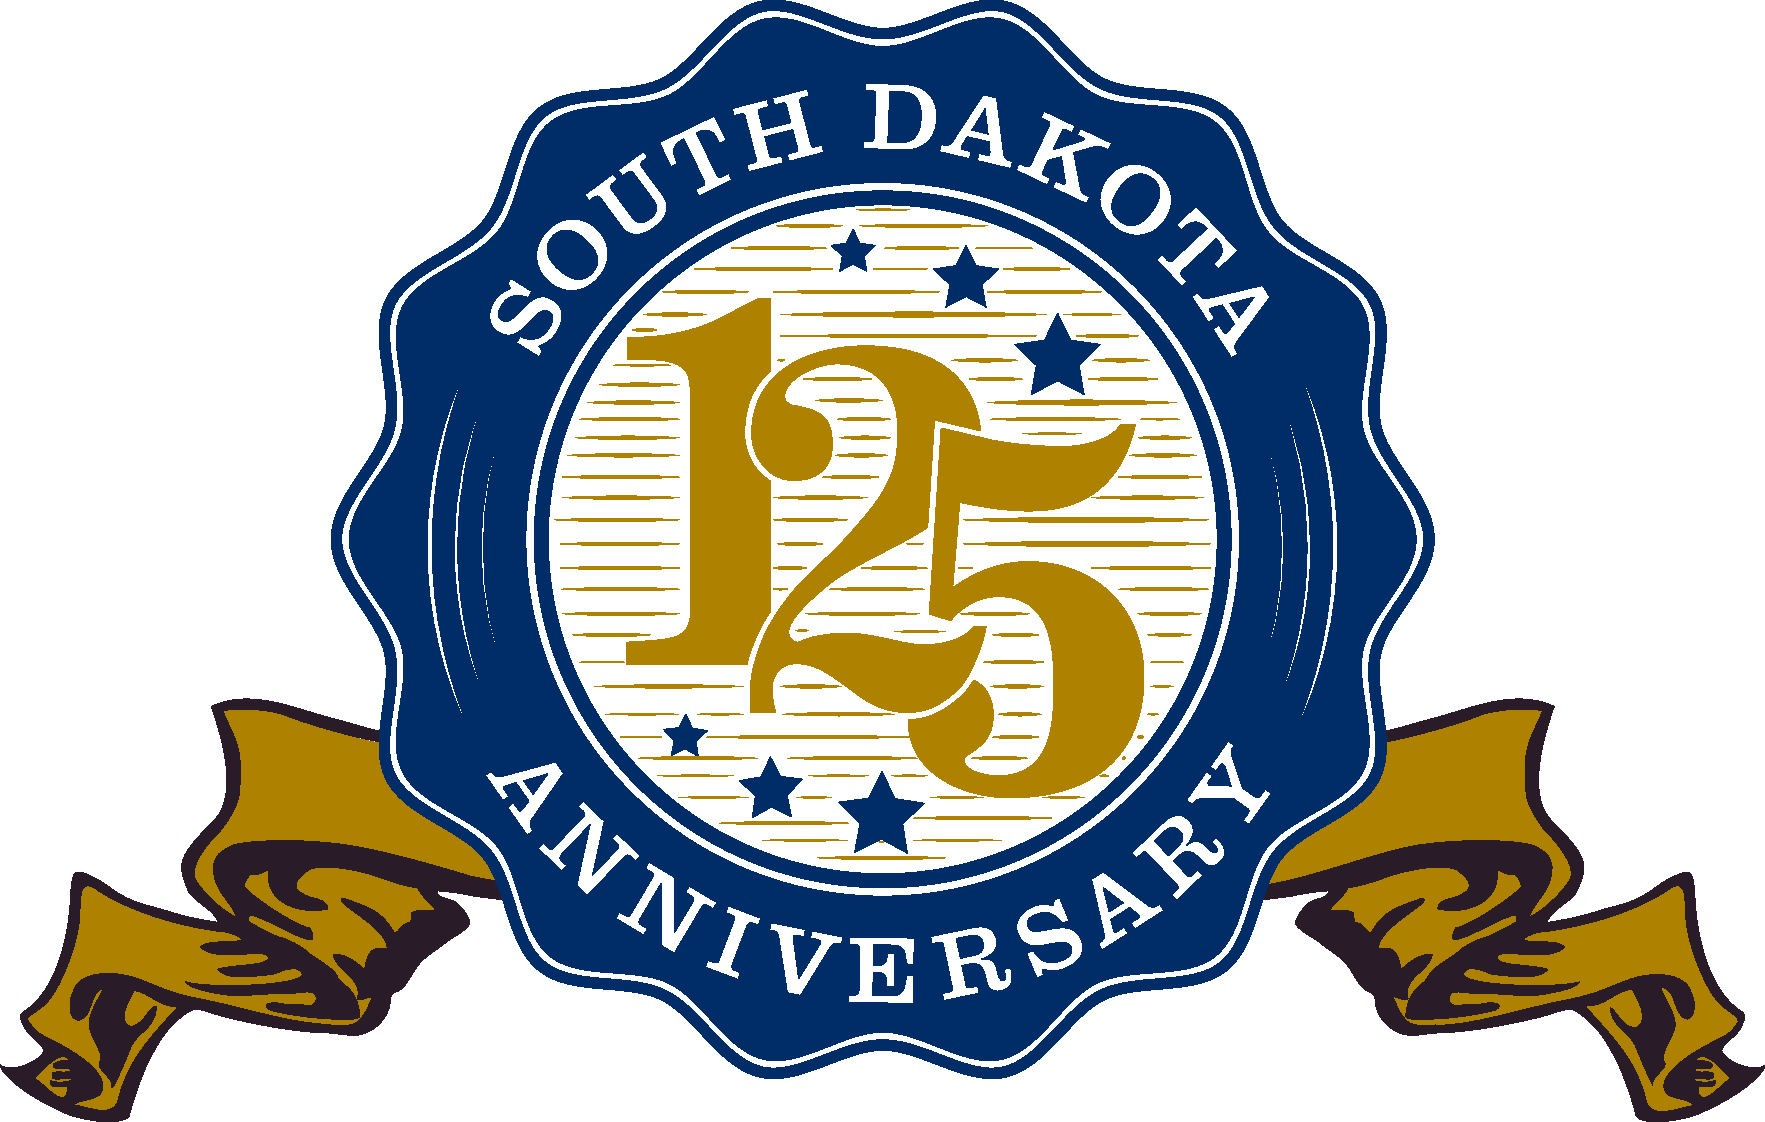 South Dakotas 125th Sd Dept Of Corrections